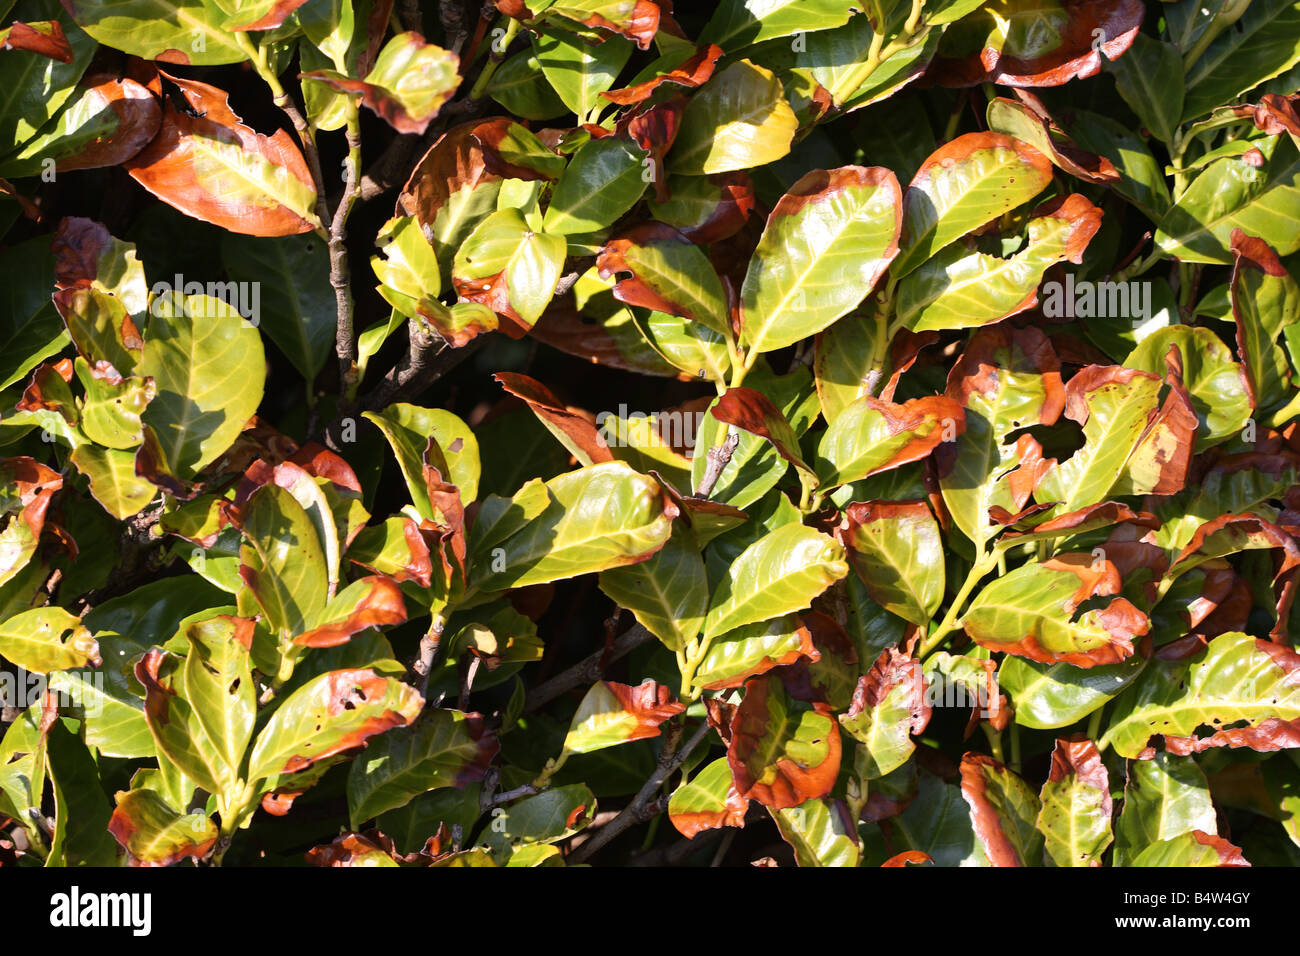 LAUREL SHOWING SIGNS OF FROST AND WIND DAMAGE - Stock Image